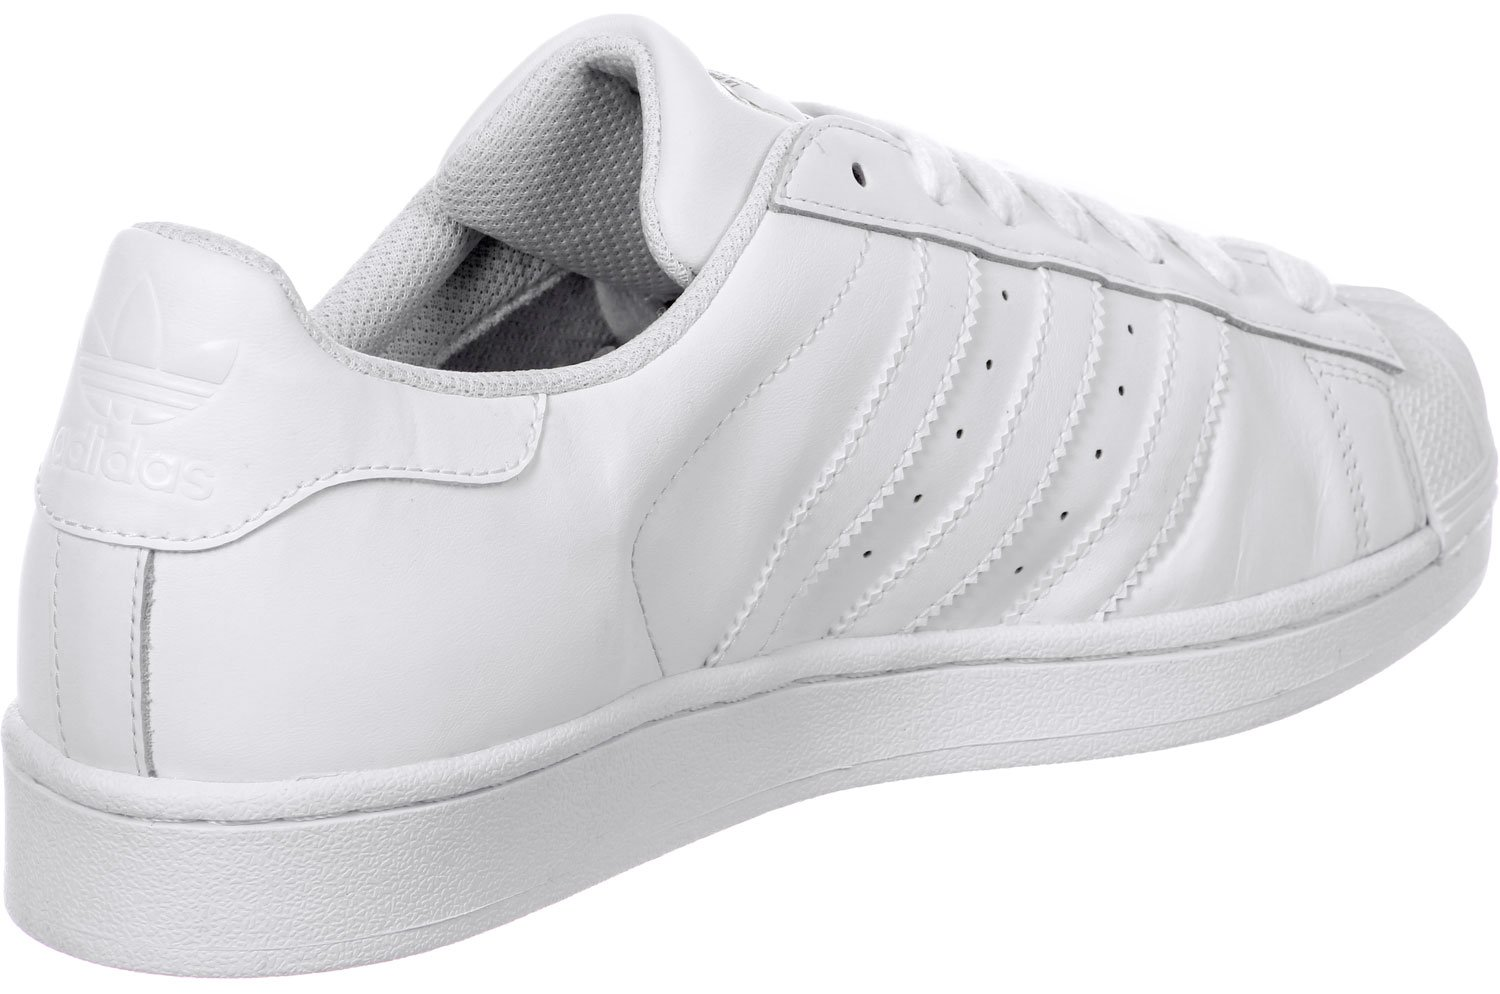 adidas Mens Superstar Foundation White Synthetic Trainers 9 US